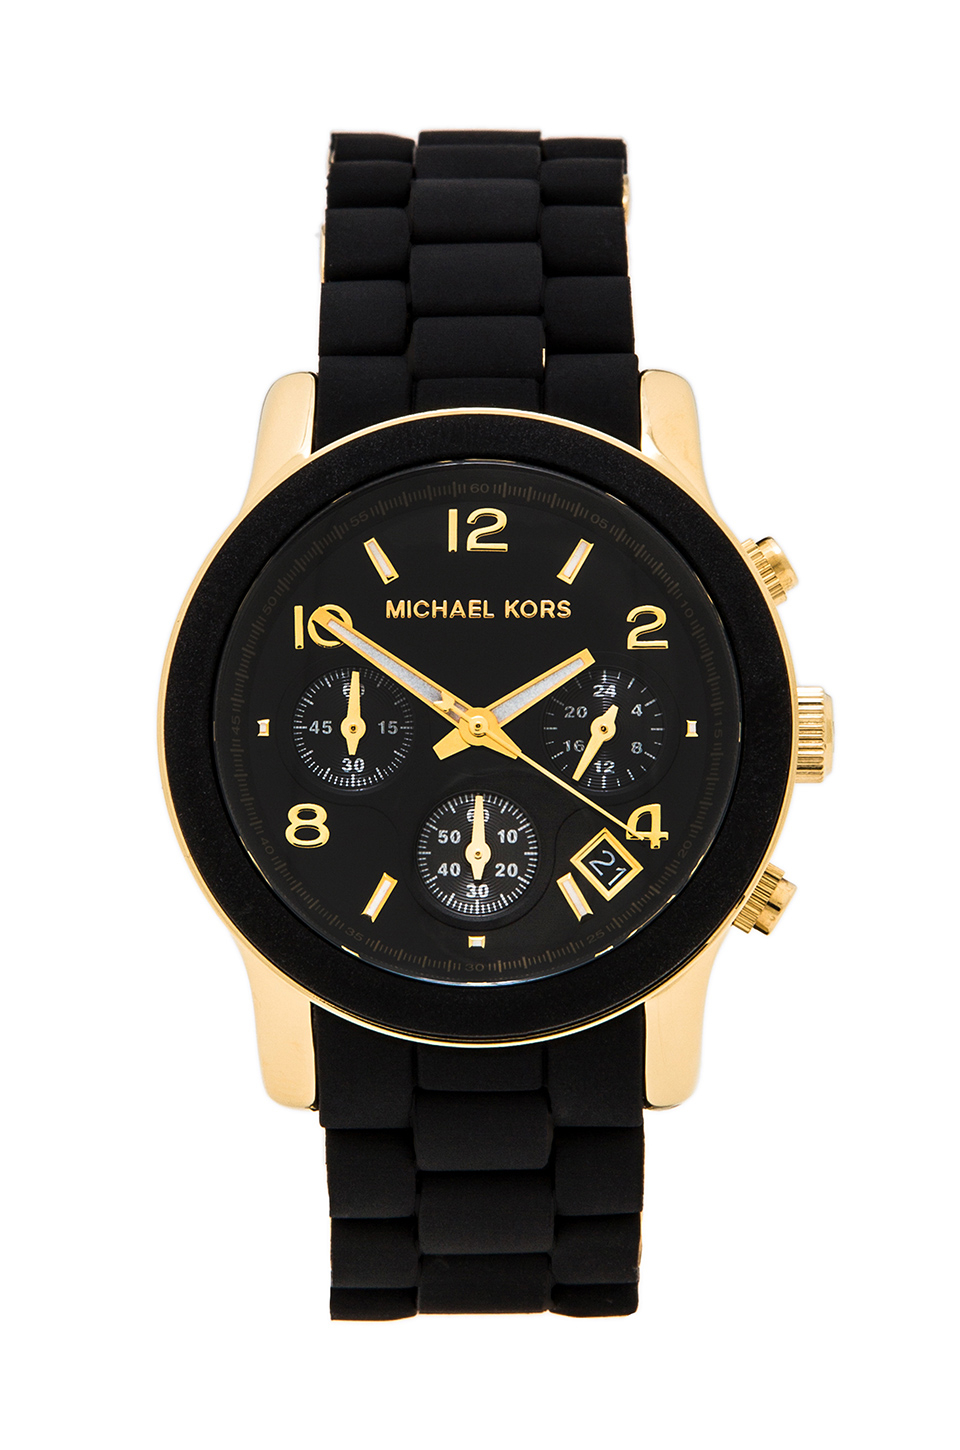 Michael kors runway watch in black lyst for Watches michael kors